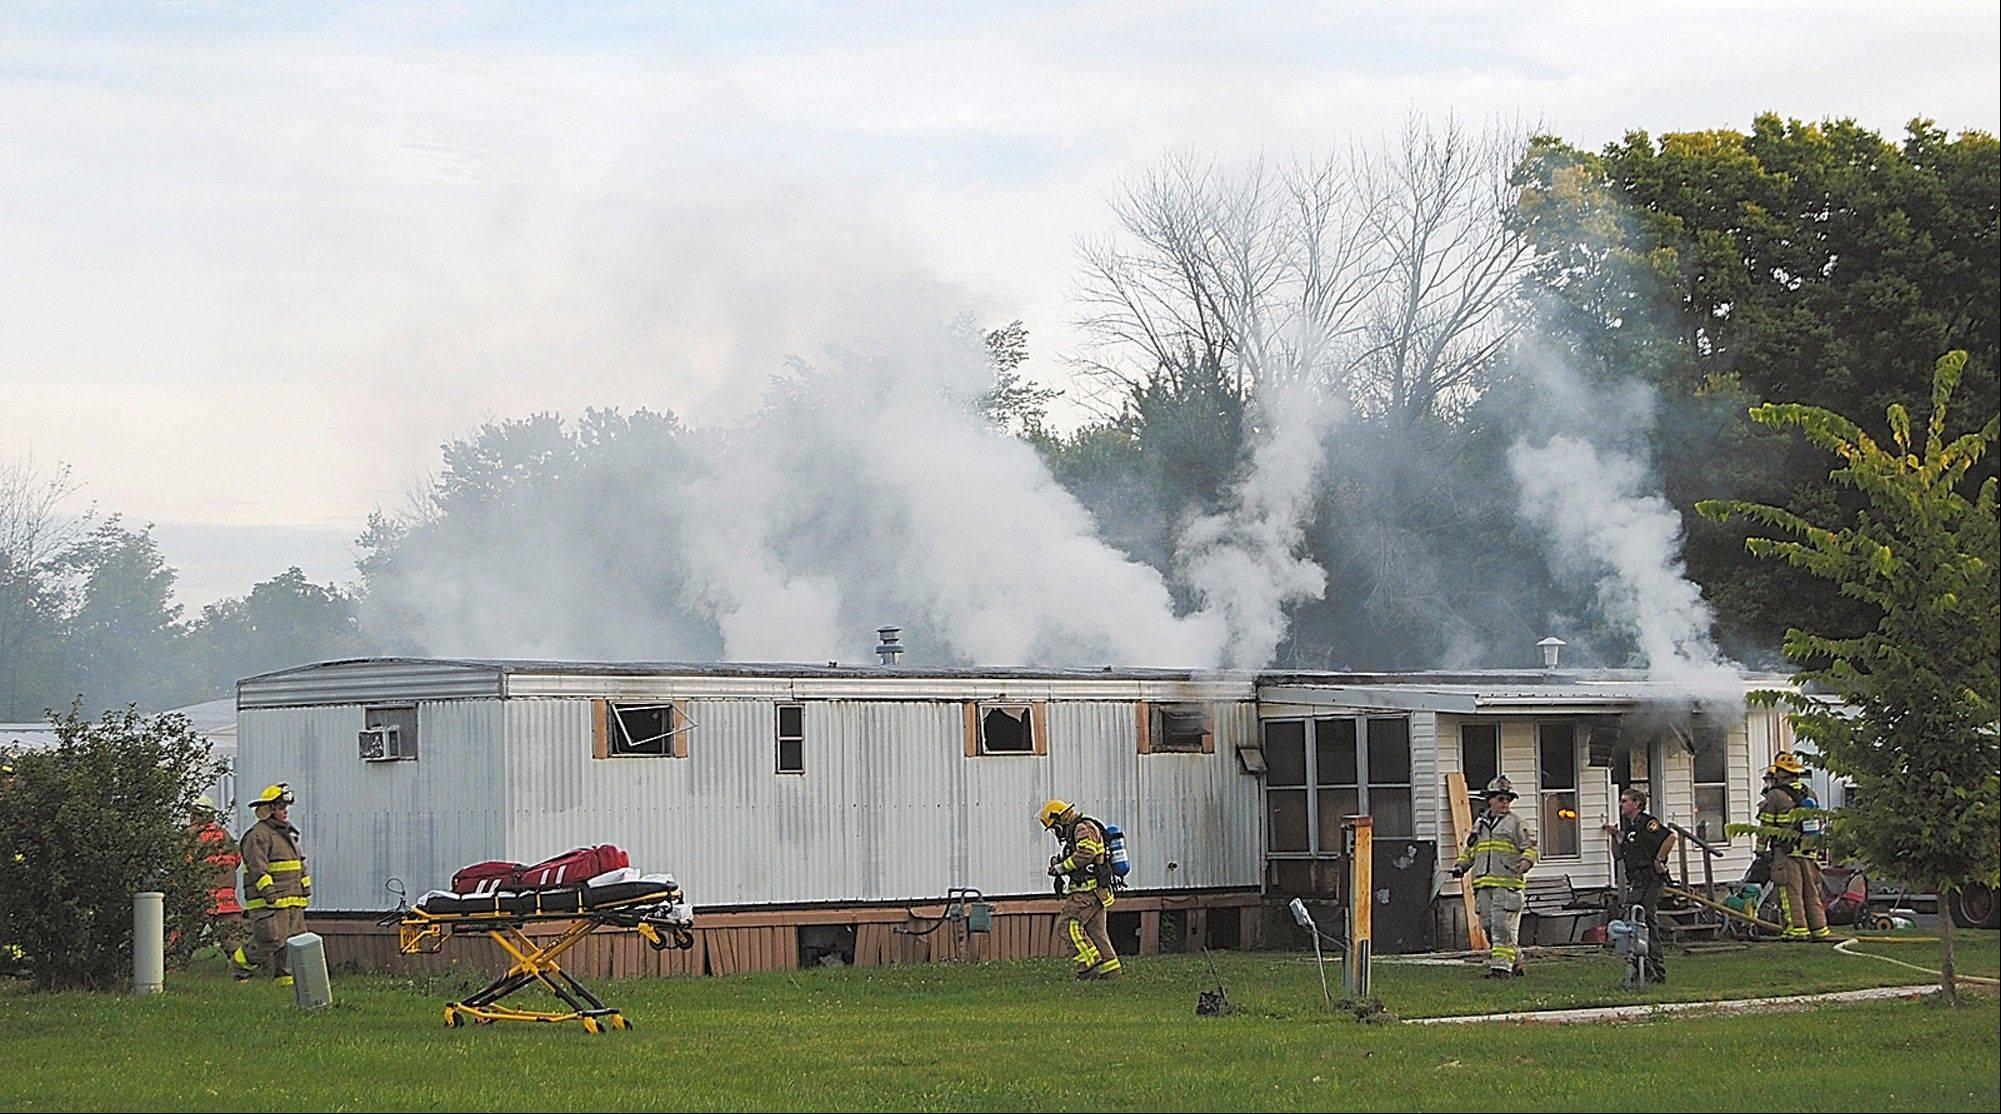 Firefighters extinguish a mobile home fire Sunday that killed a man and five children in Tiffin, Ohio, according to police.